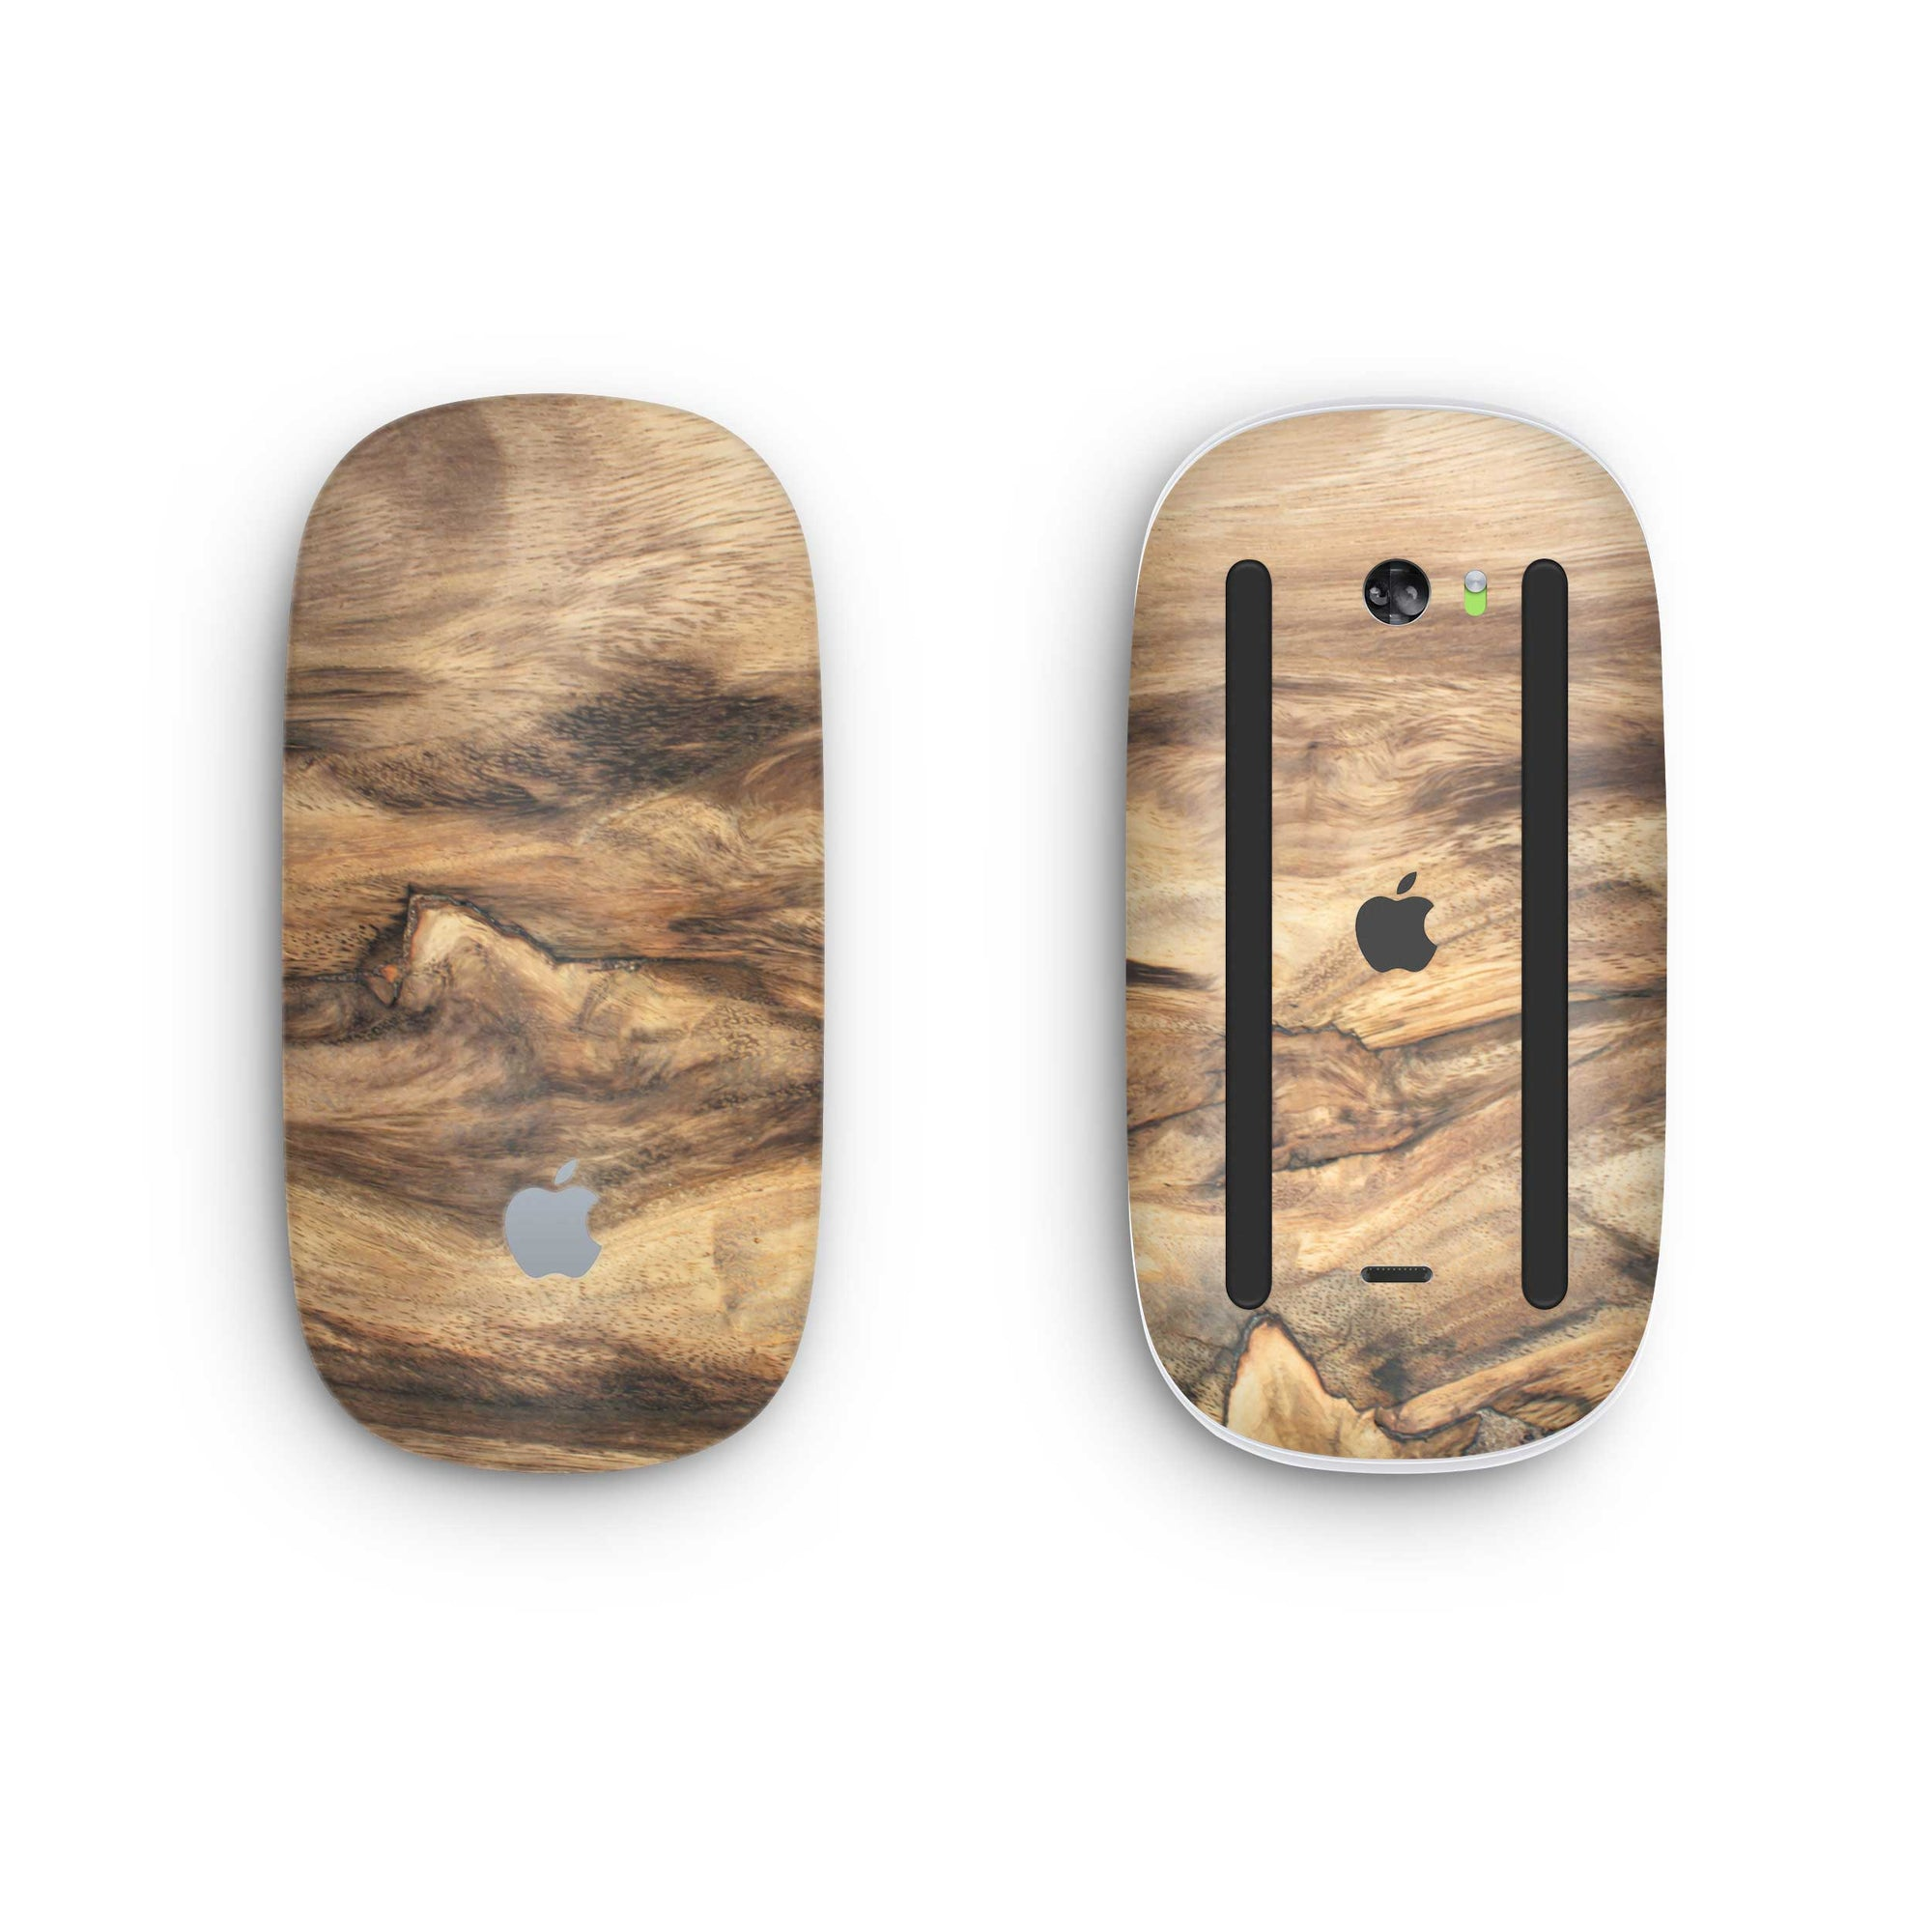 Wood Magic Mouse 2 Skin